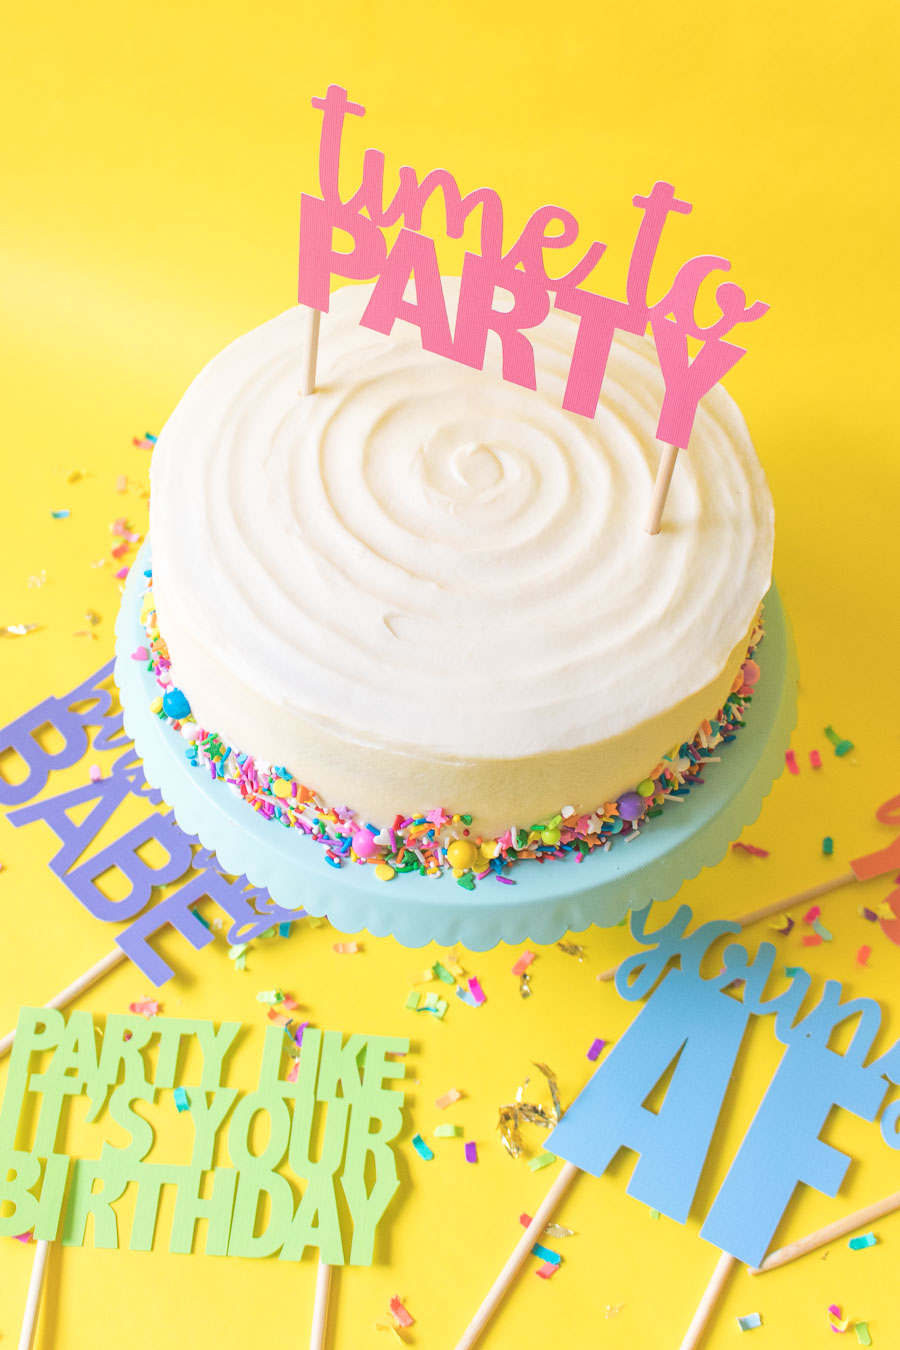 image about Birthday Cake Template Printable identified as Printable Cake Toppers for Birthdays (+ Cost-free SVG Templates!)